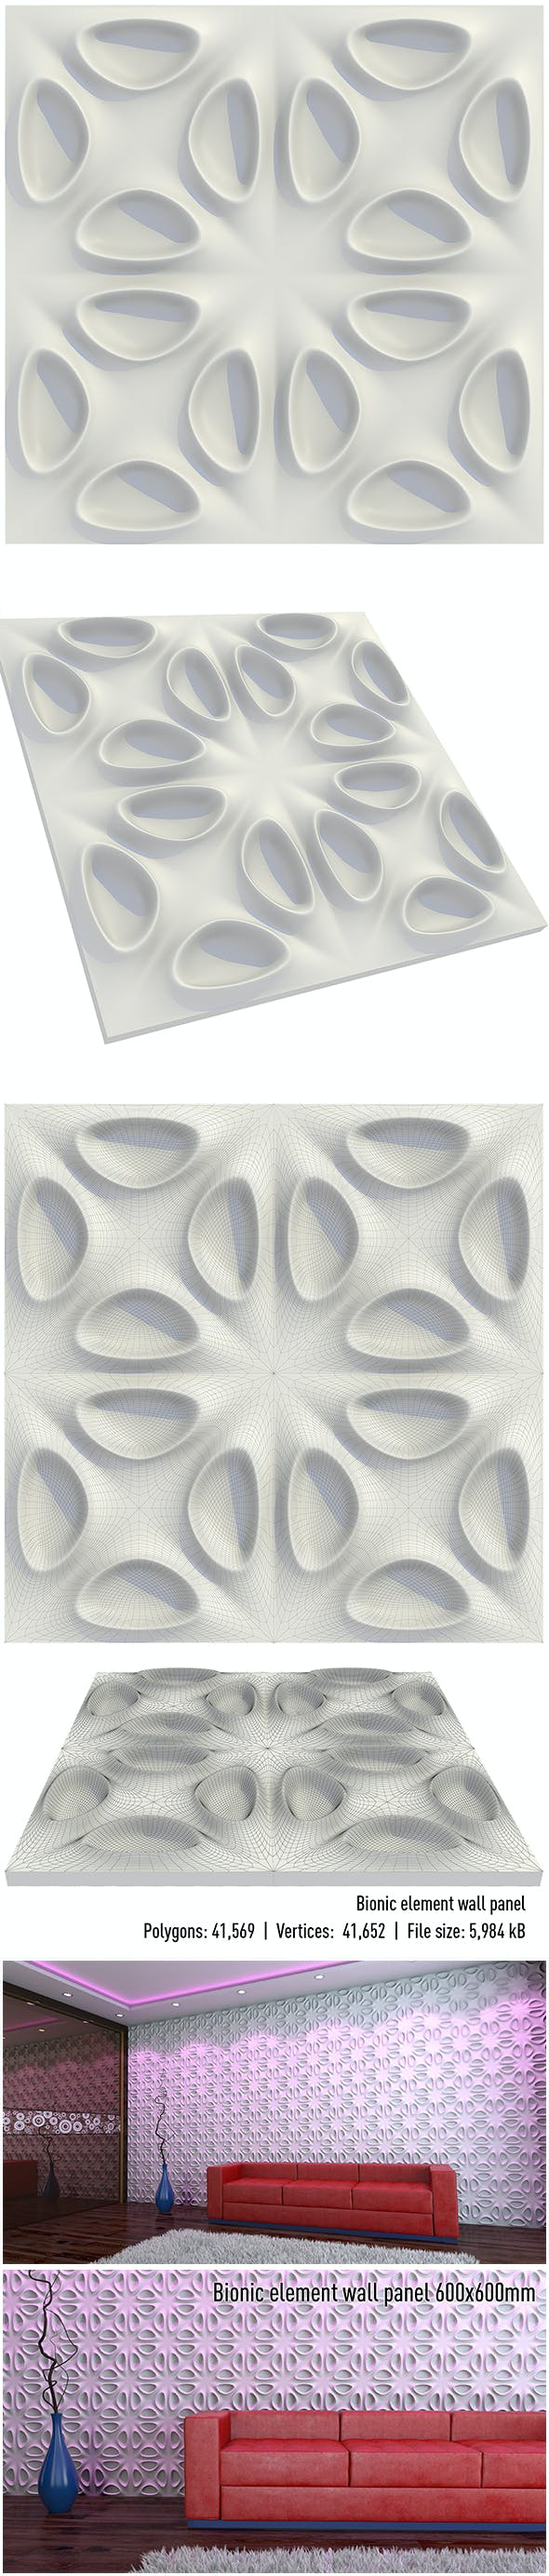 wall panel bionic element_1 - 3DOcean Item for Sale